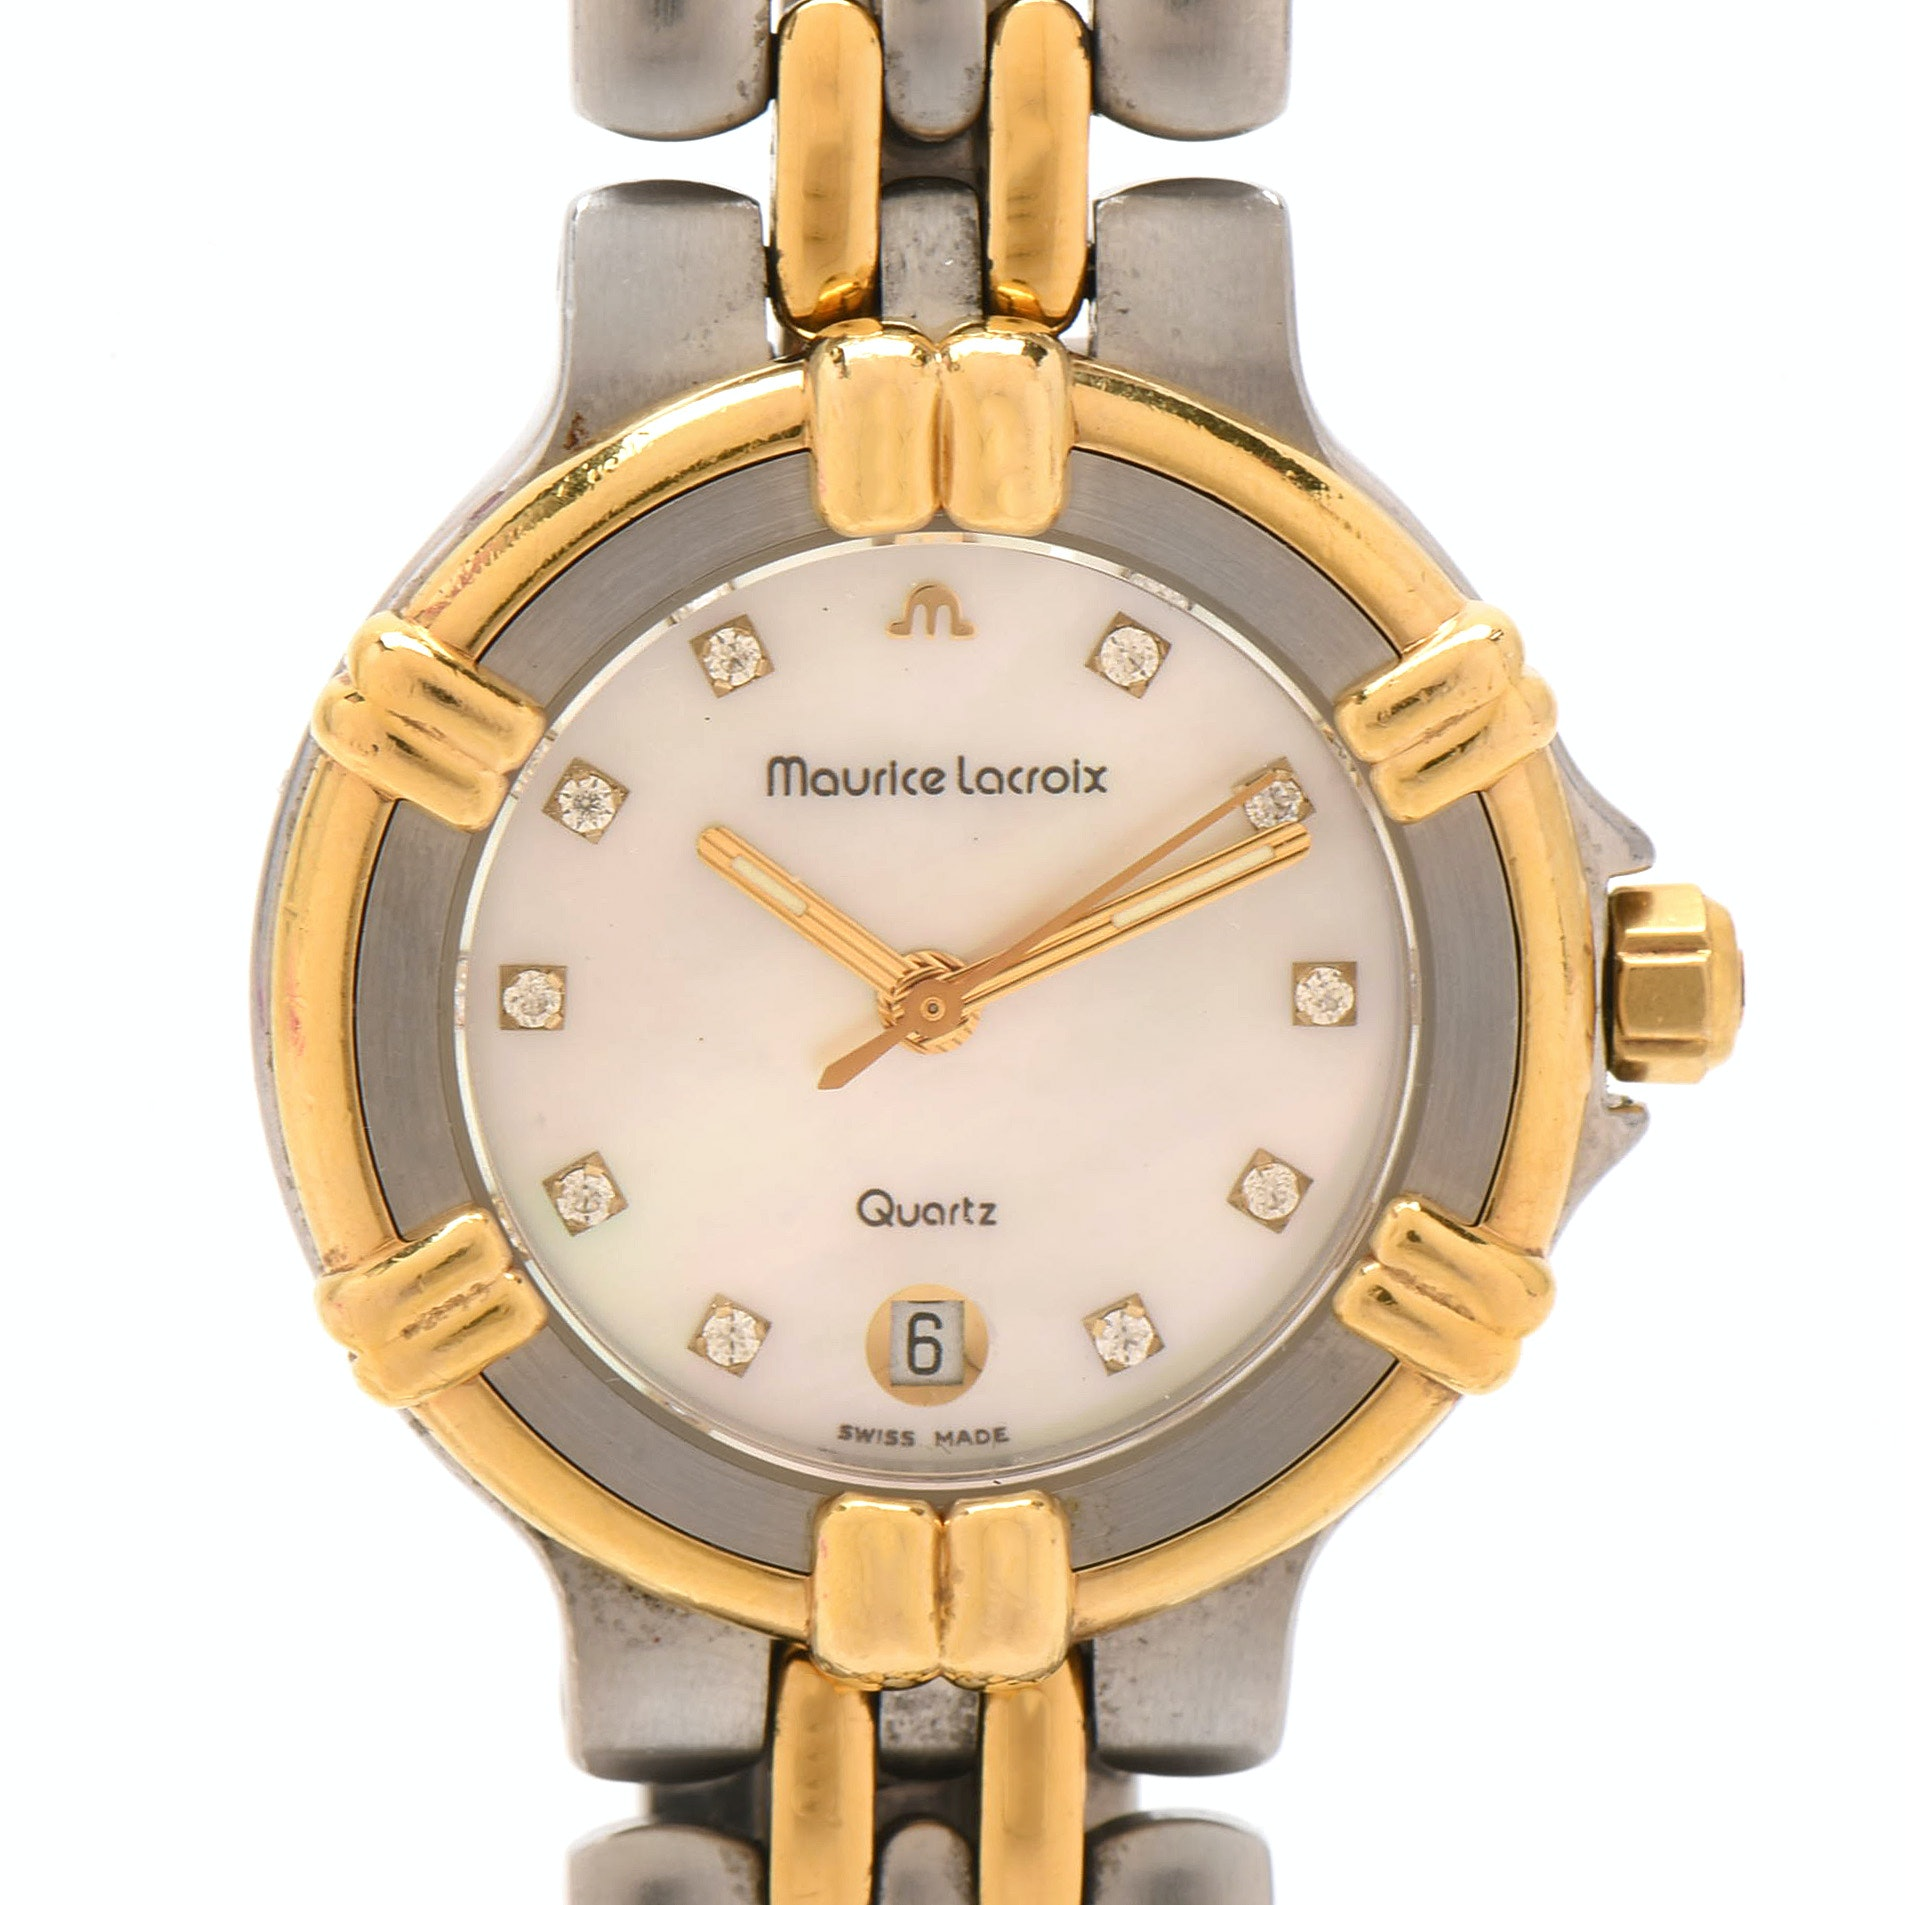 Maurice Lacroix Stainless Steel Mother of Pearl Wristwatch with 14K Yellow Gold